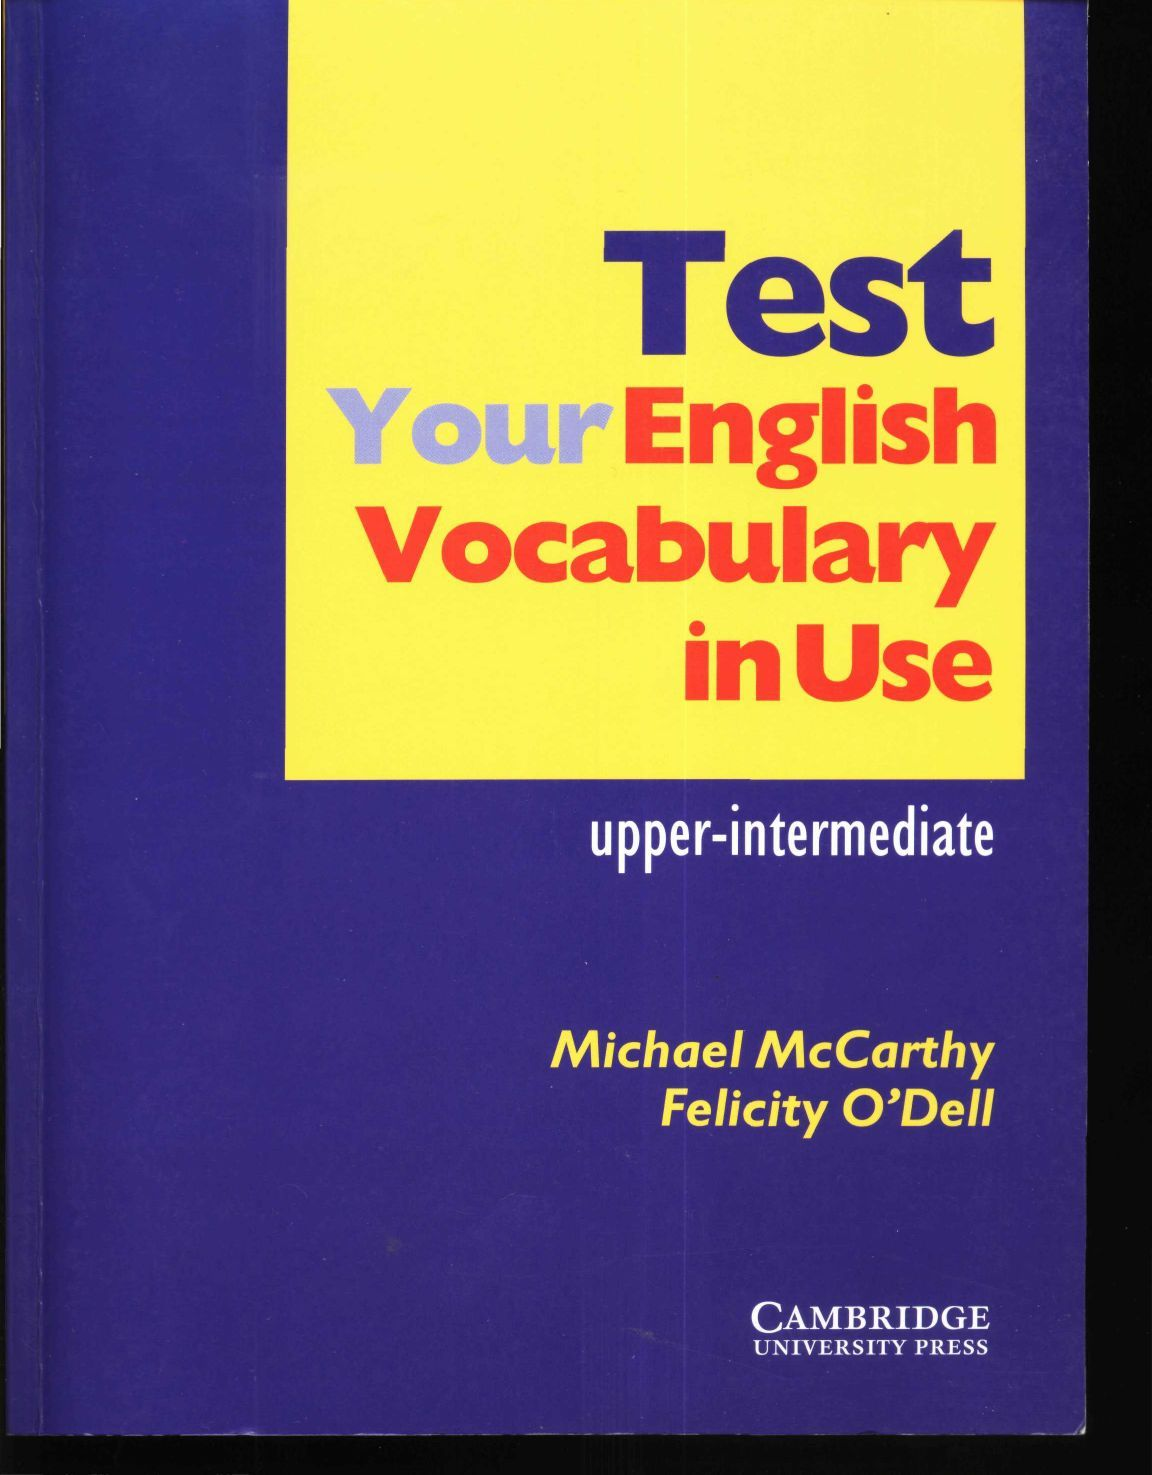 Test your english vocabulary in use - upper-intermediate